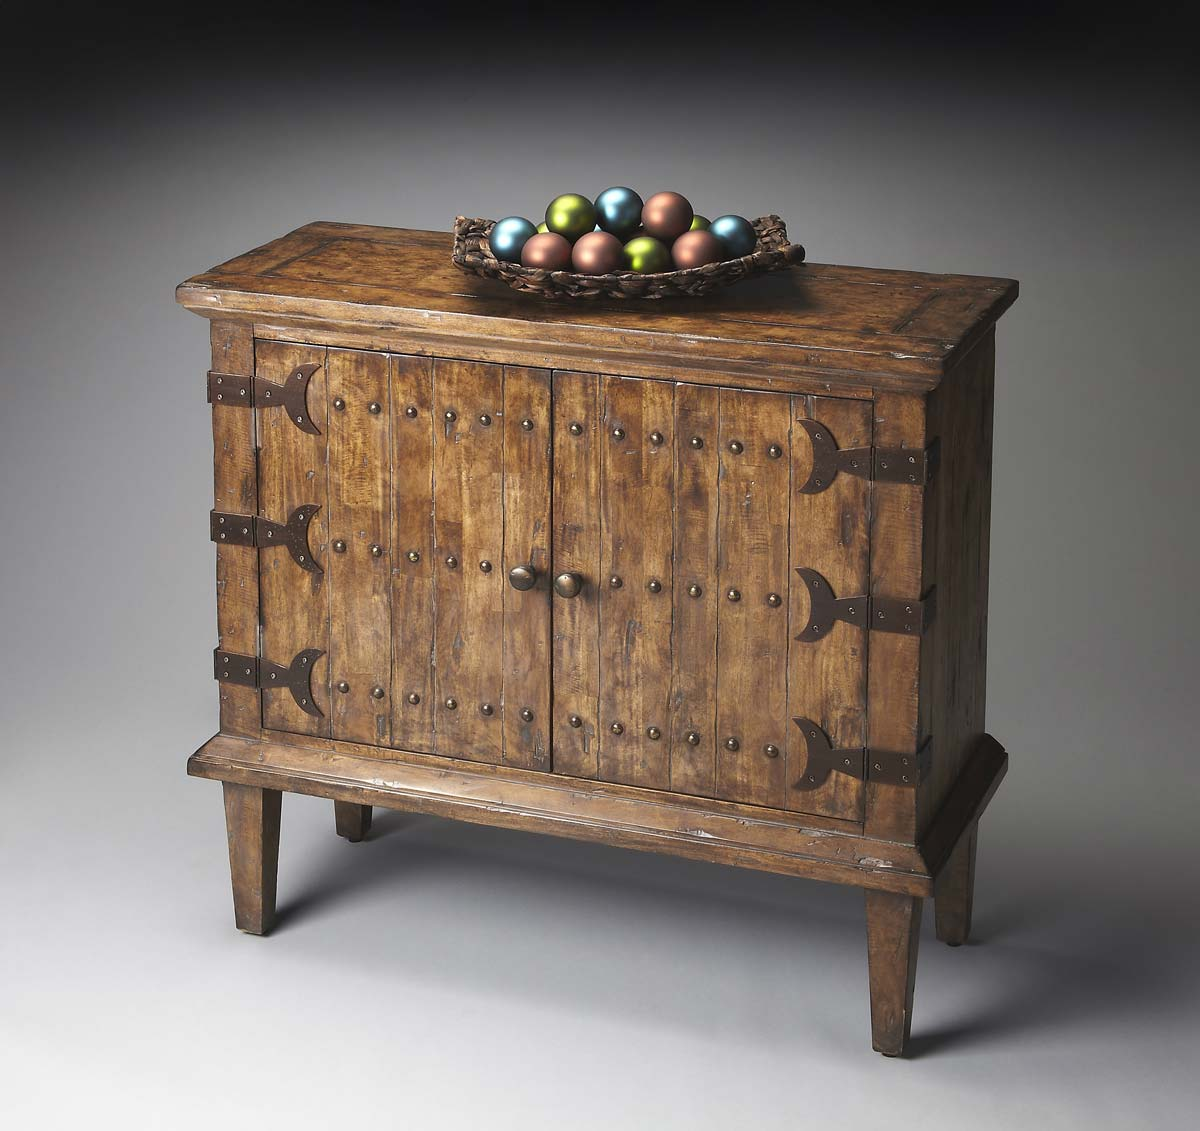 Butler 1141120 Console Cabinet - Mountain Lodge